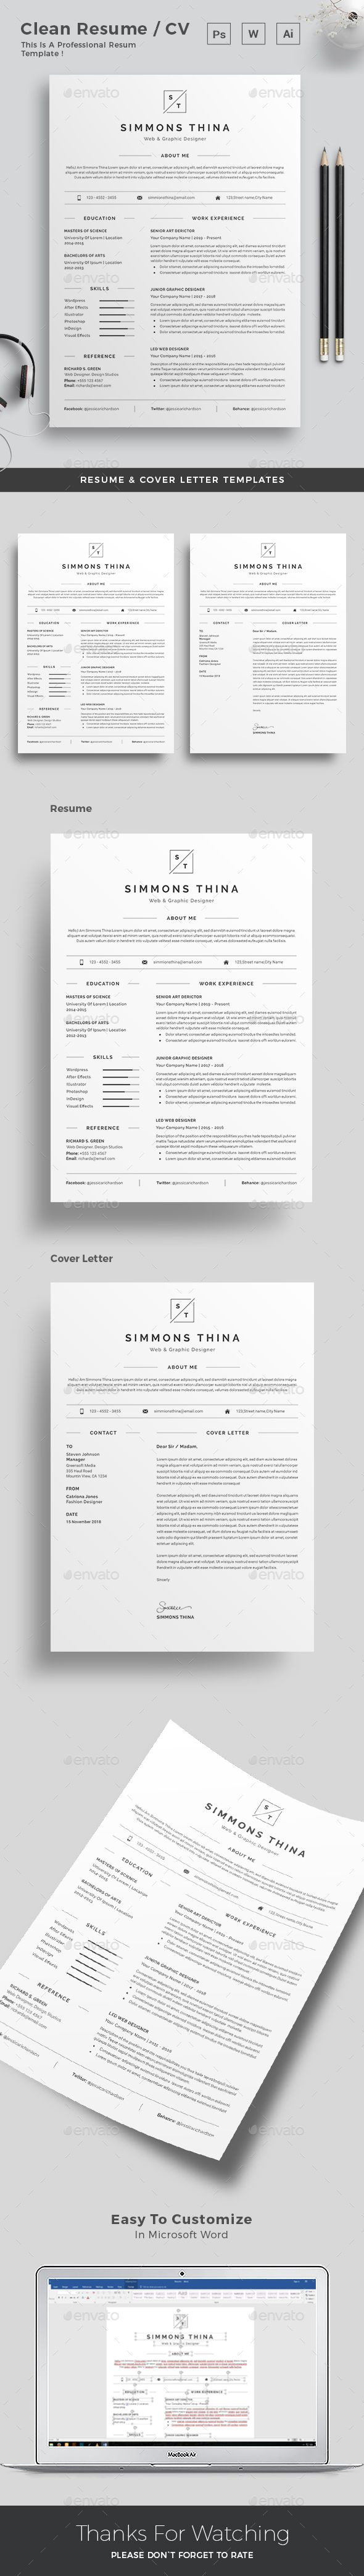 Resume Resume Word Template / CV Template With Super Clean And Modern Look.  Clean Resume  How To Do A Resume For A Job